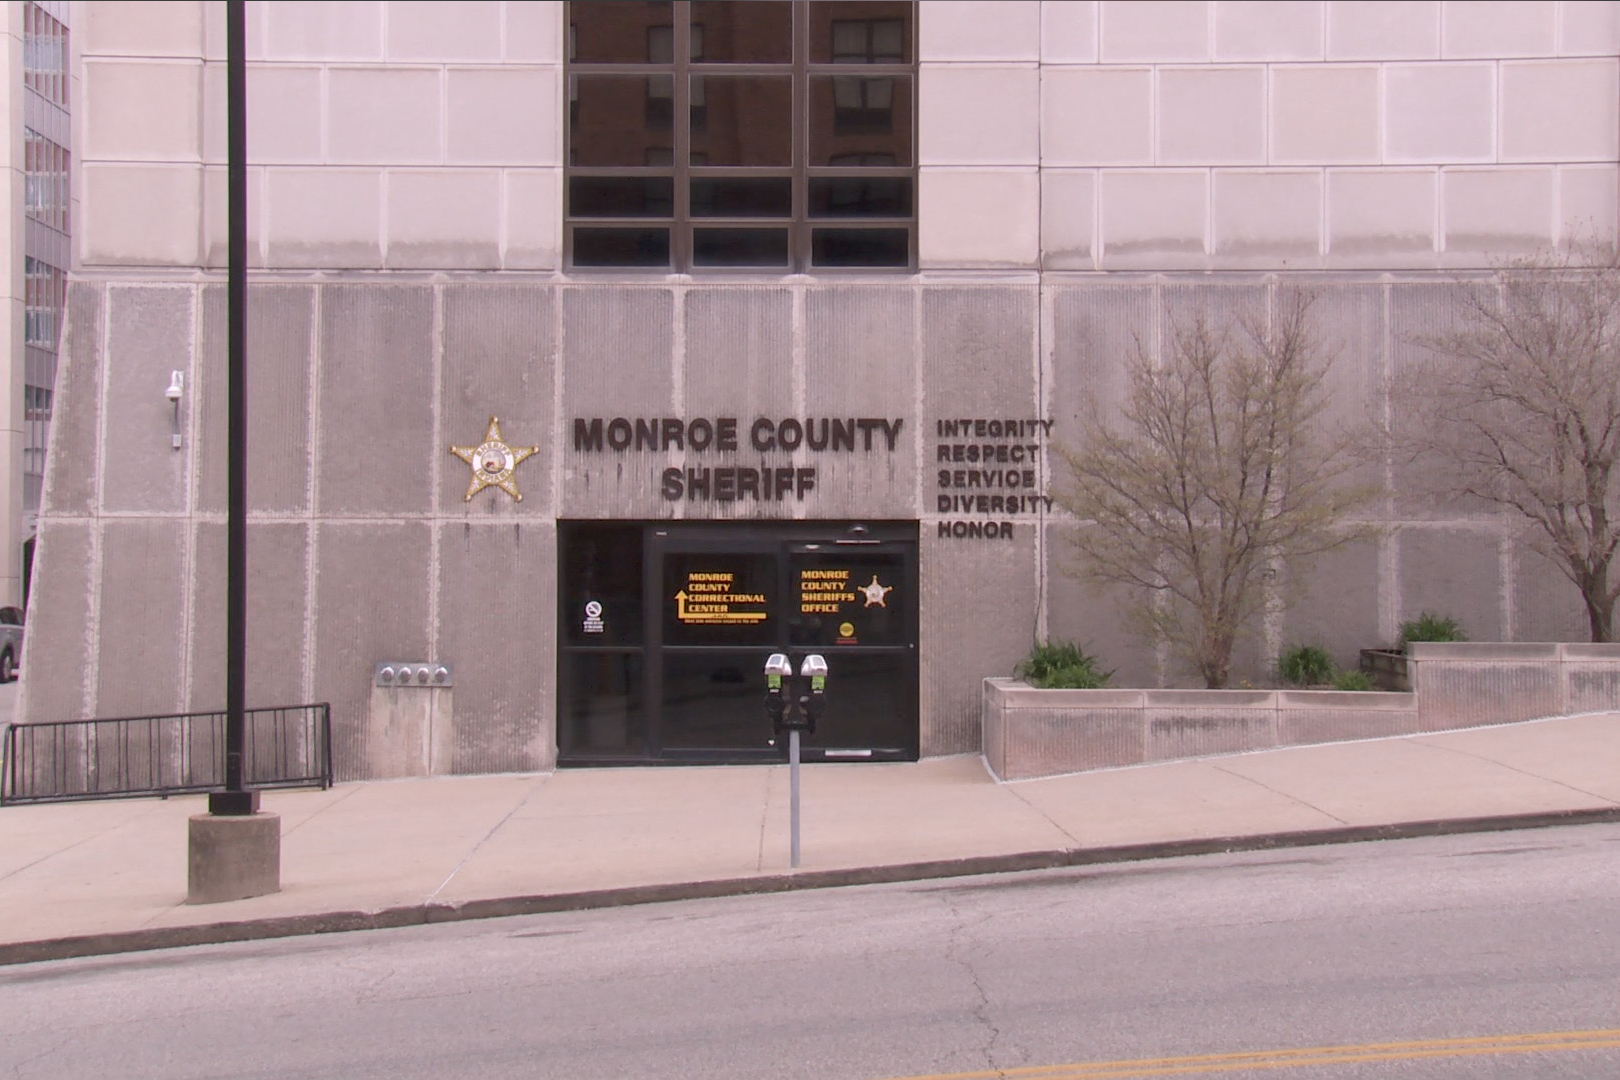 Monroe County Sheriff's Department